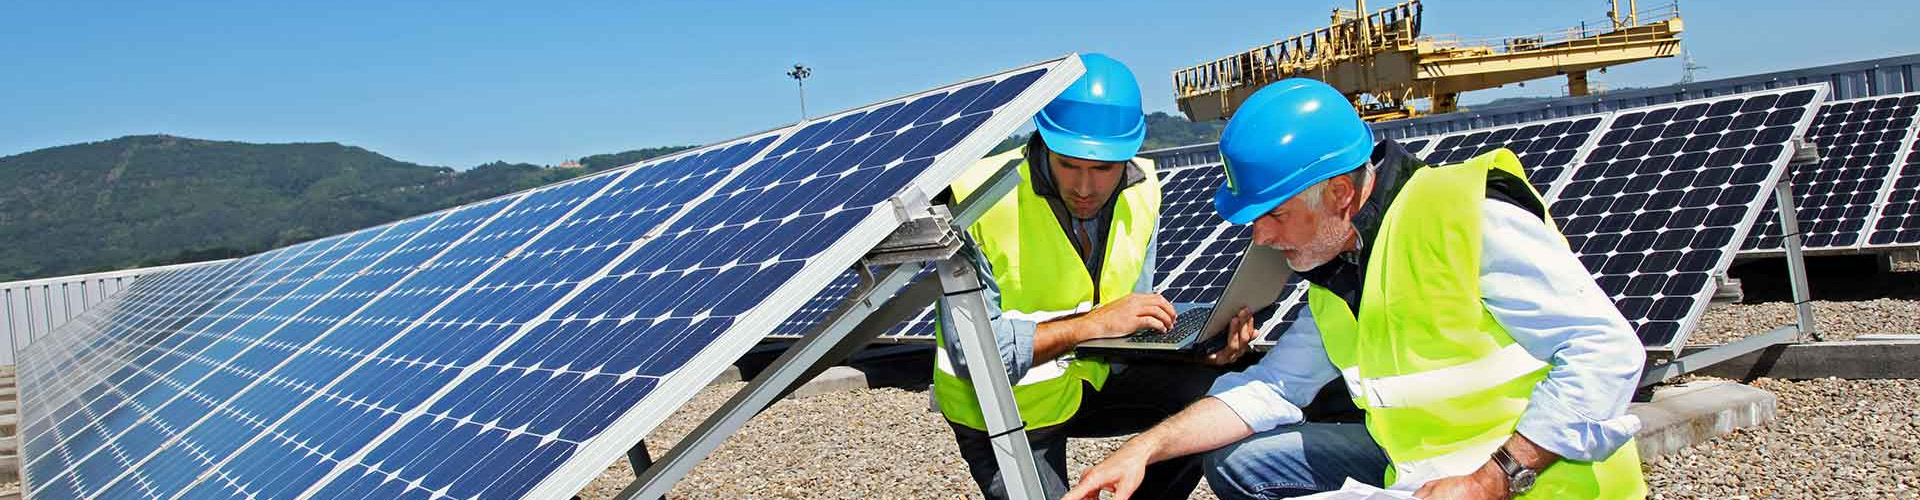 How to move into a Renewable Energy career Post-Lockdown